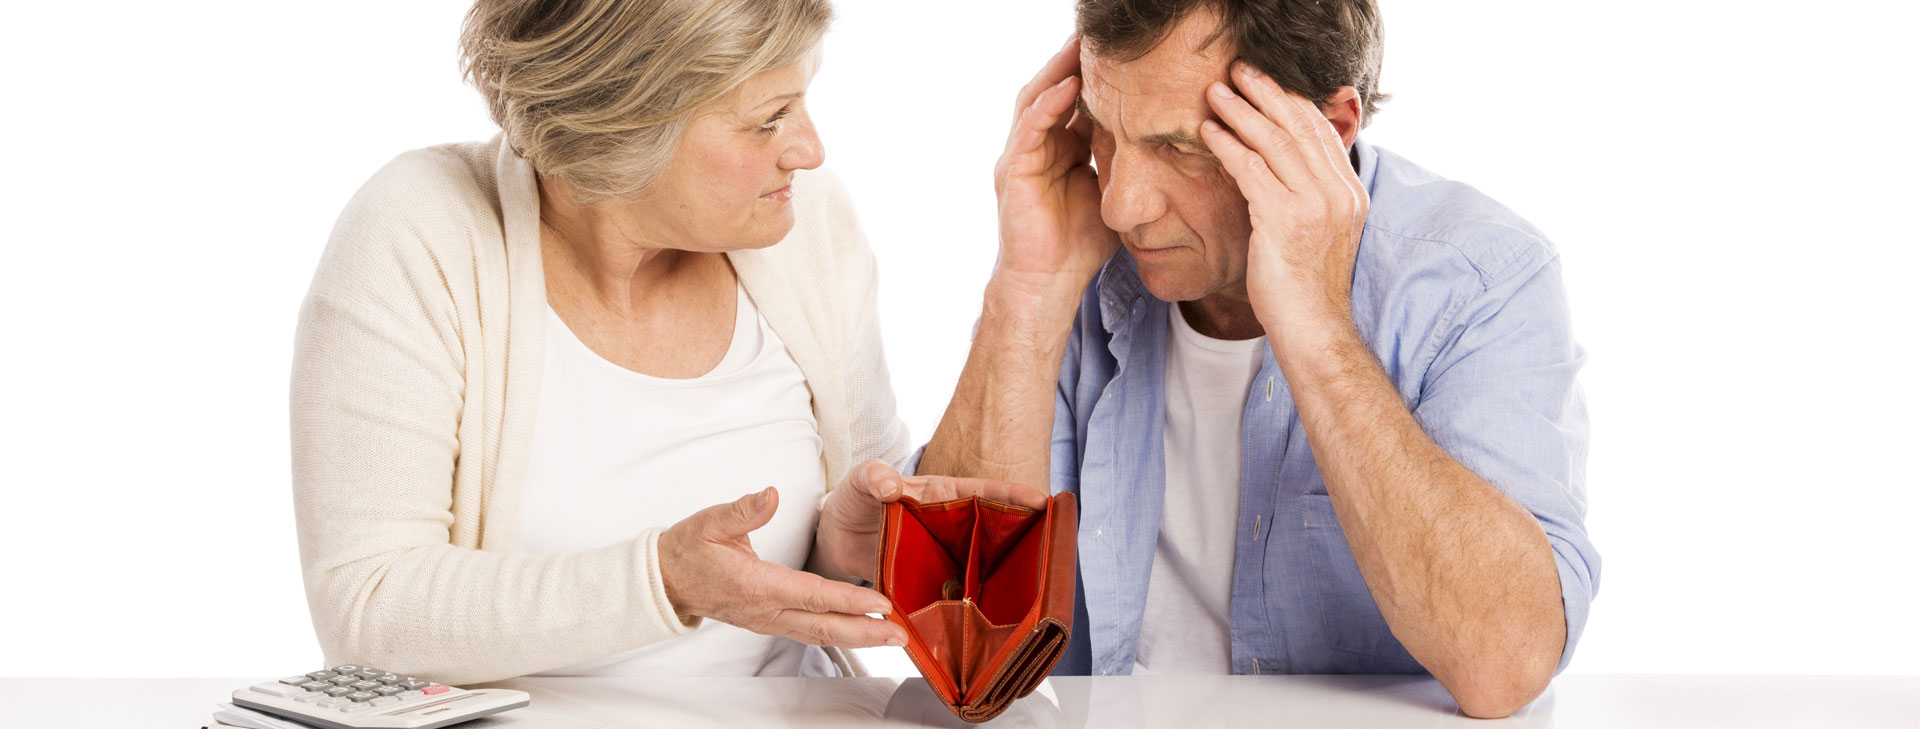 Man and woman fighting over empty wallet